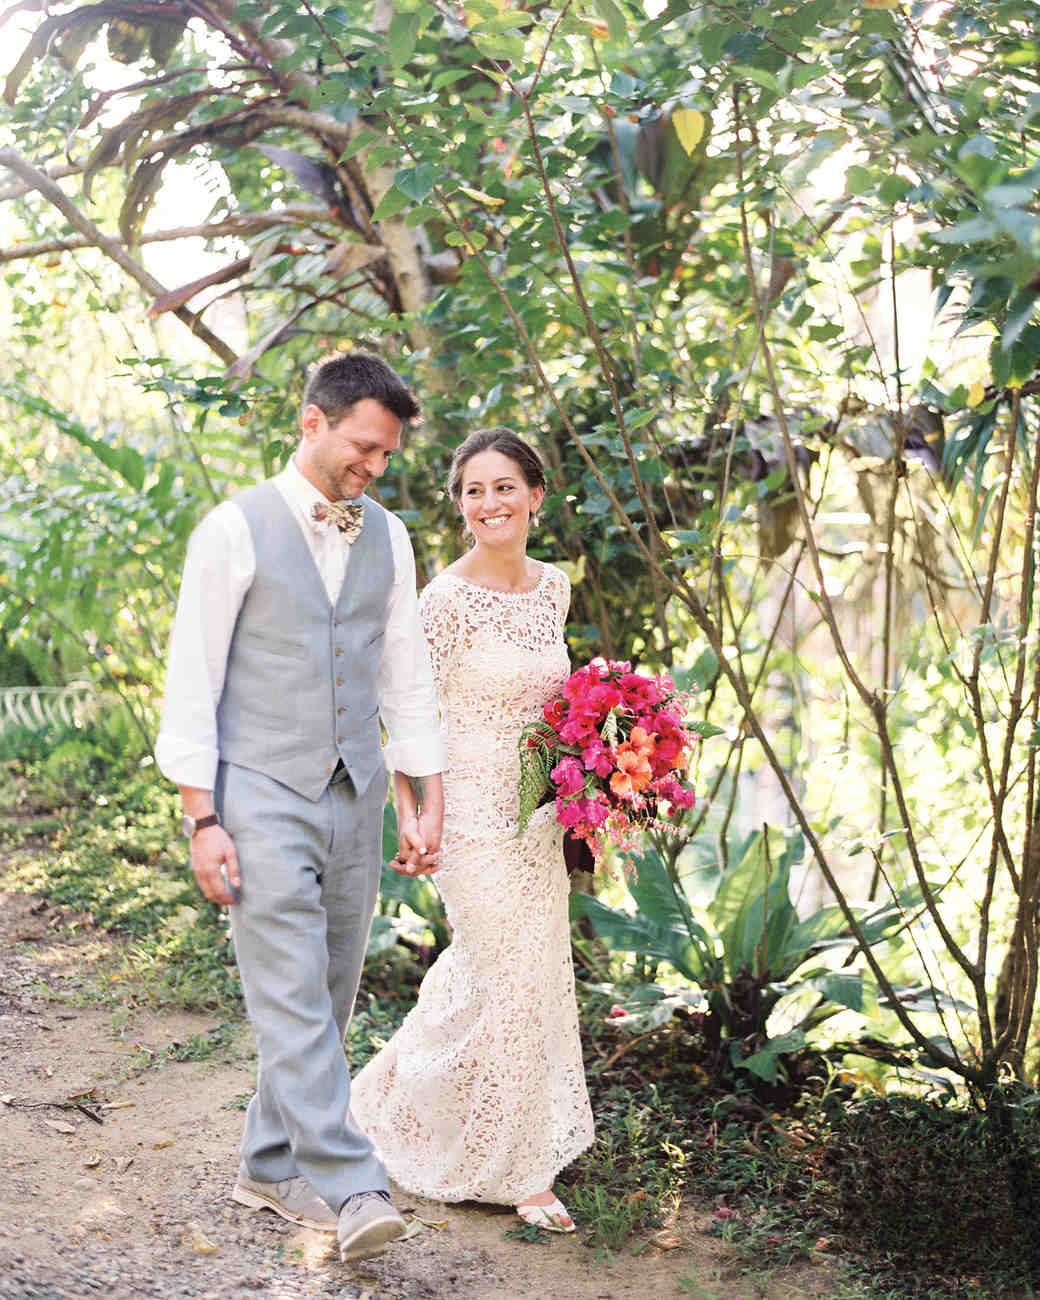 Costa Rica Weddings: A Laid-Back Destination Wedding In Tropical Costa Rica